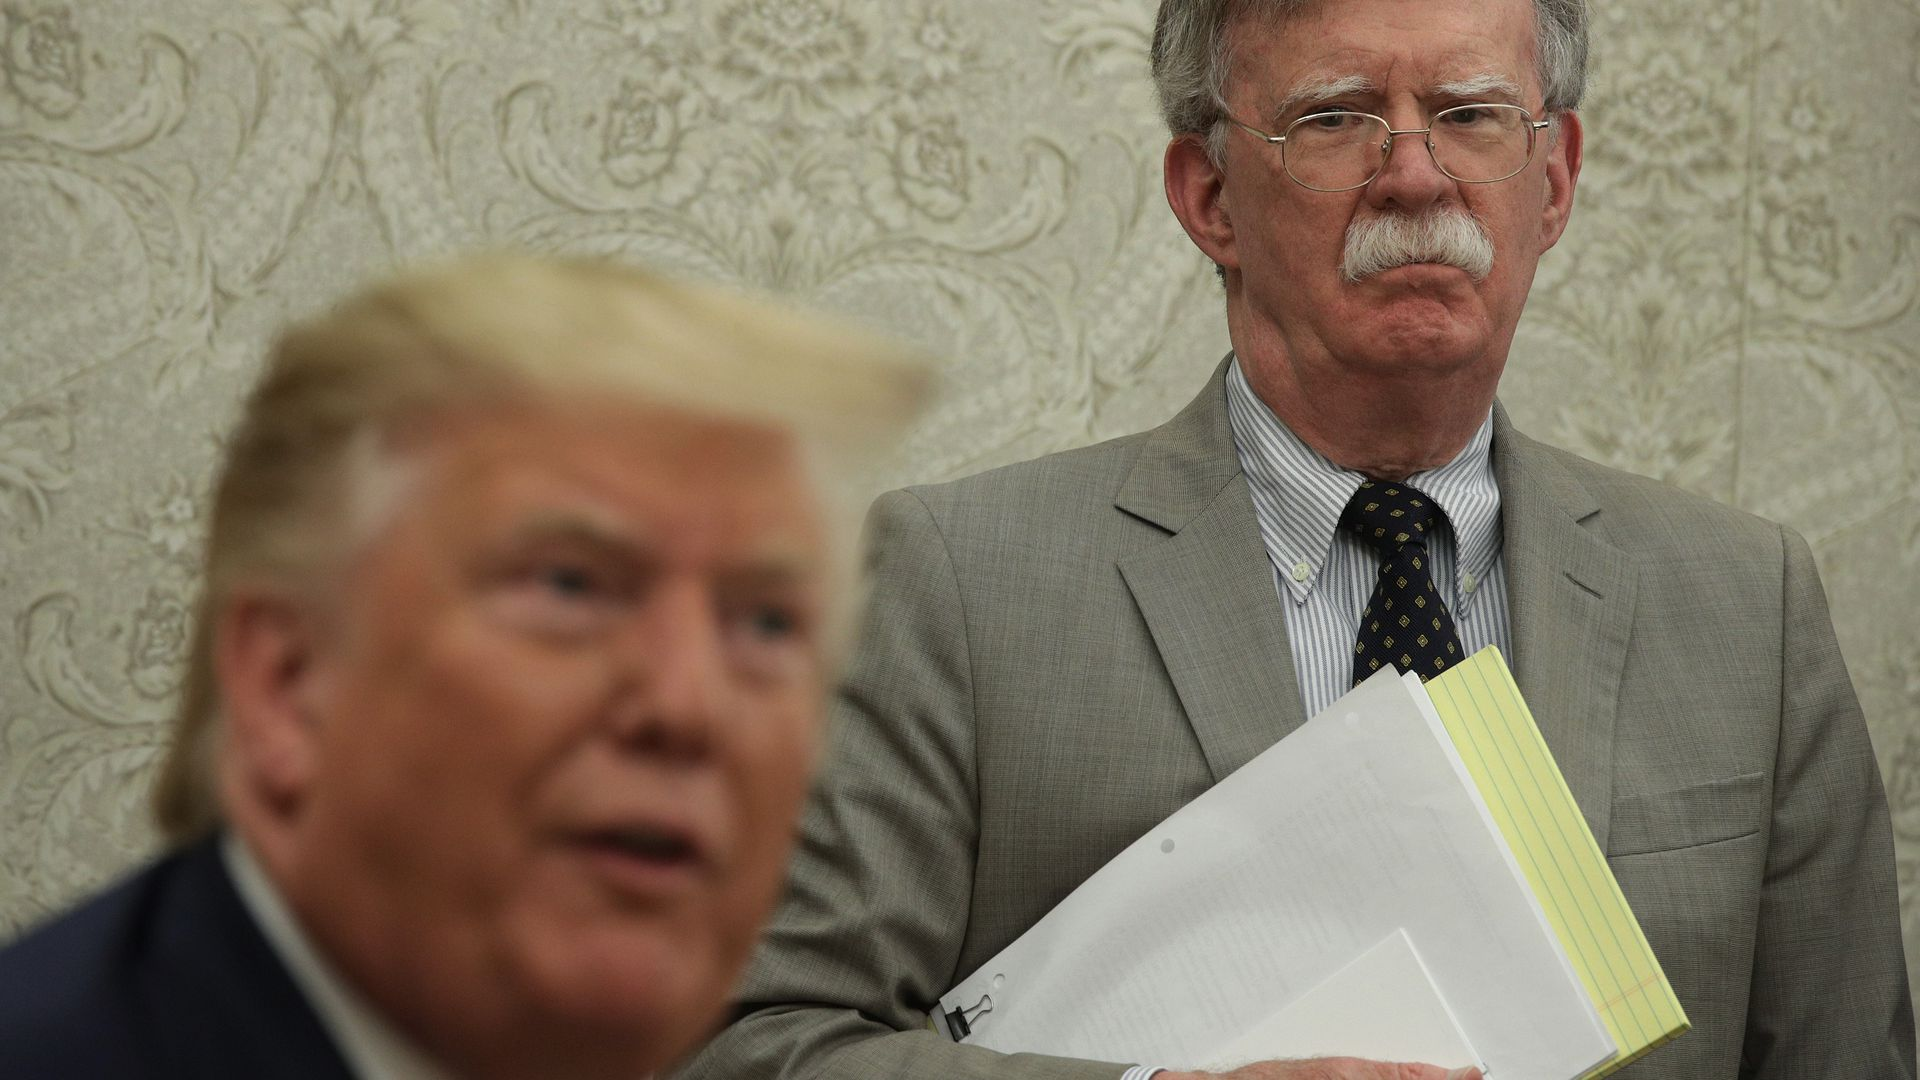 Trump Told Bolton Ukraine Aid Contingent on Probe Into Democratic Rivals